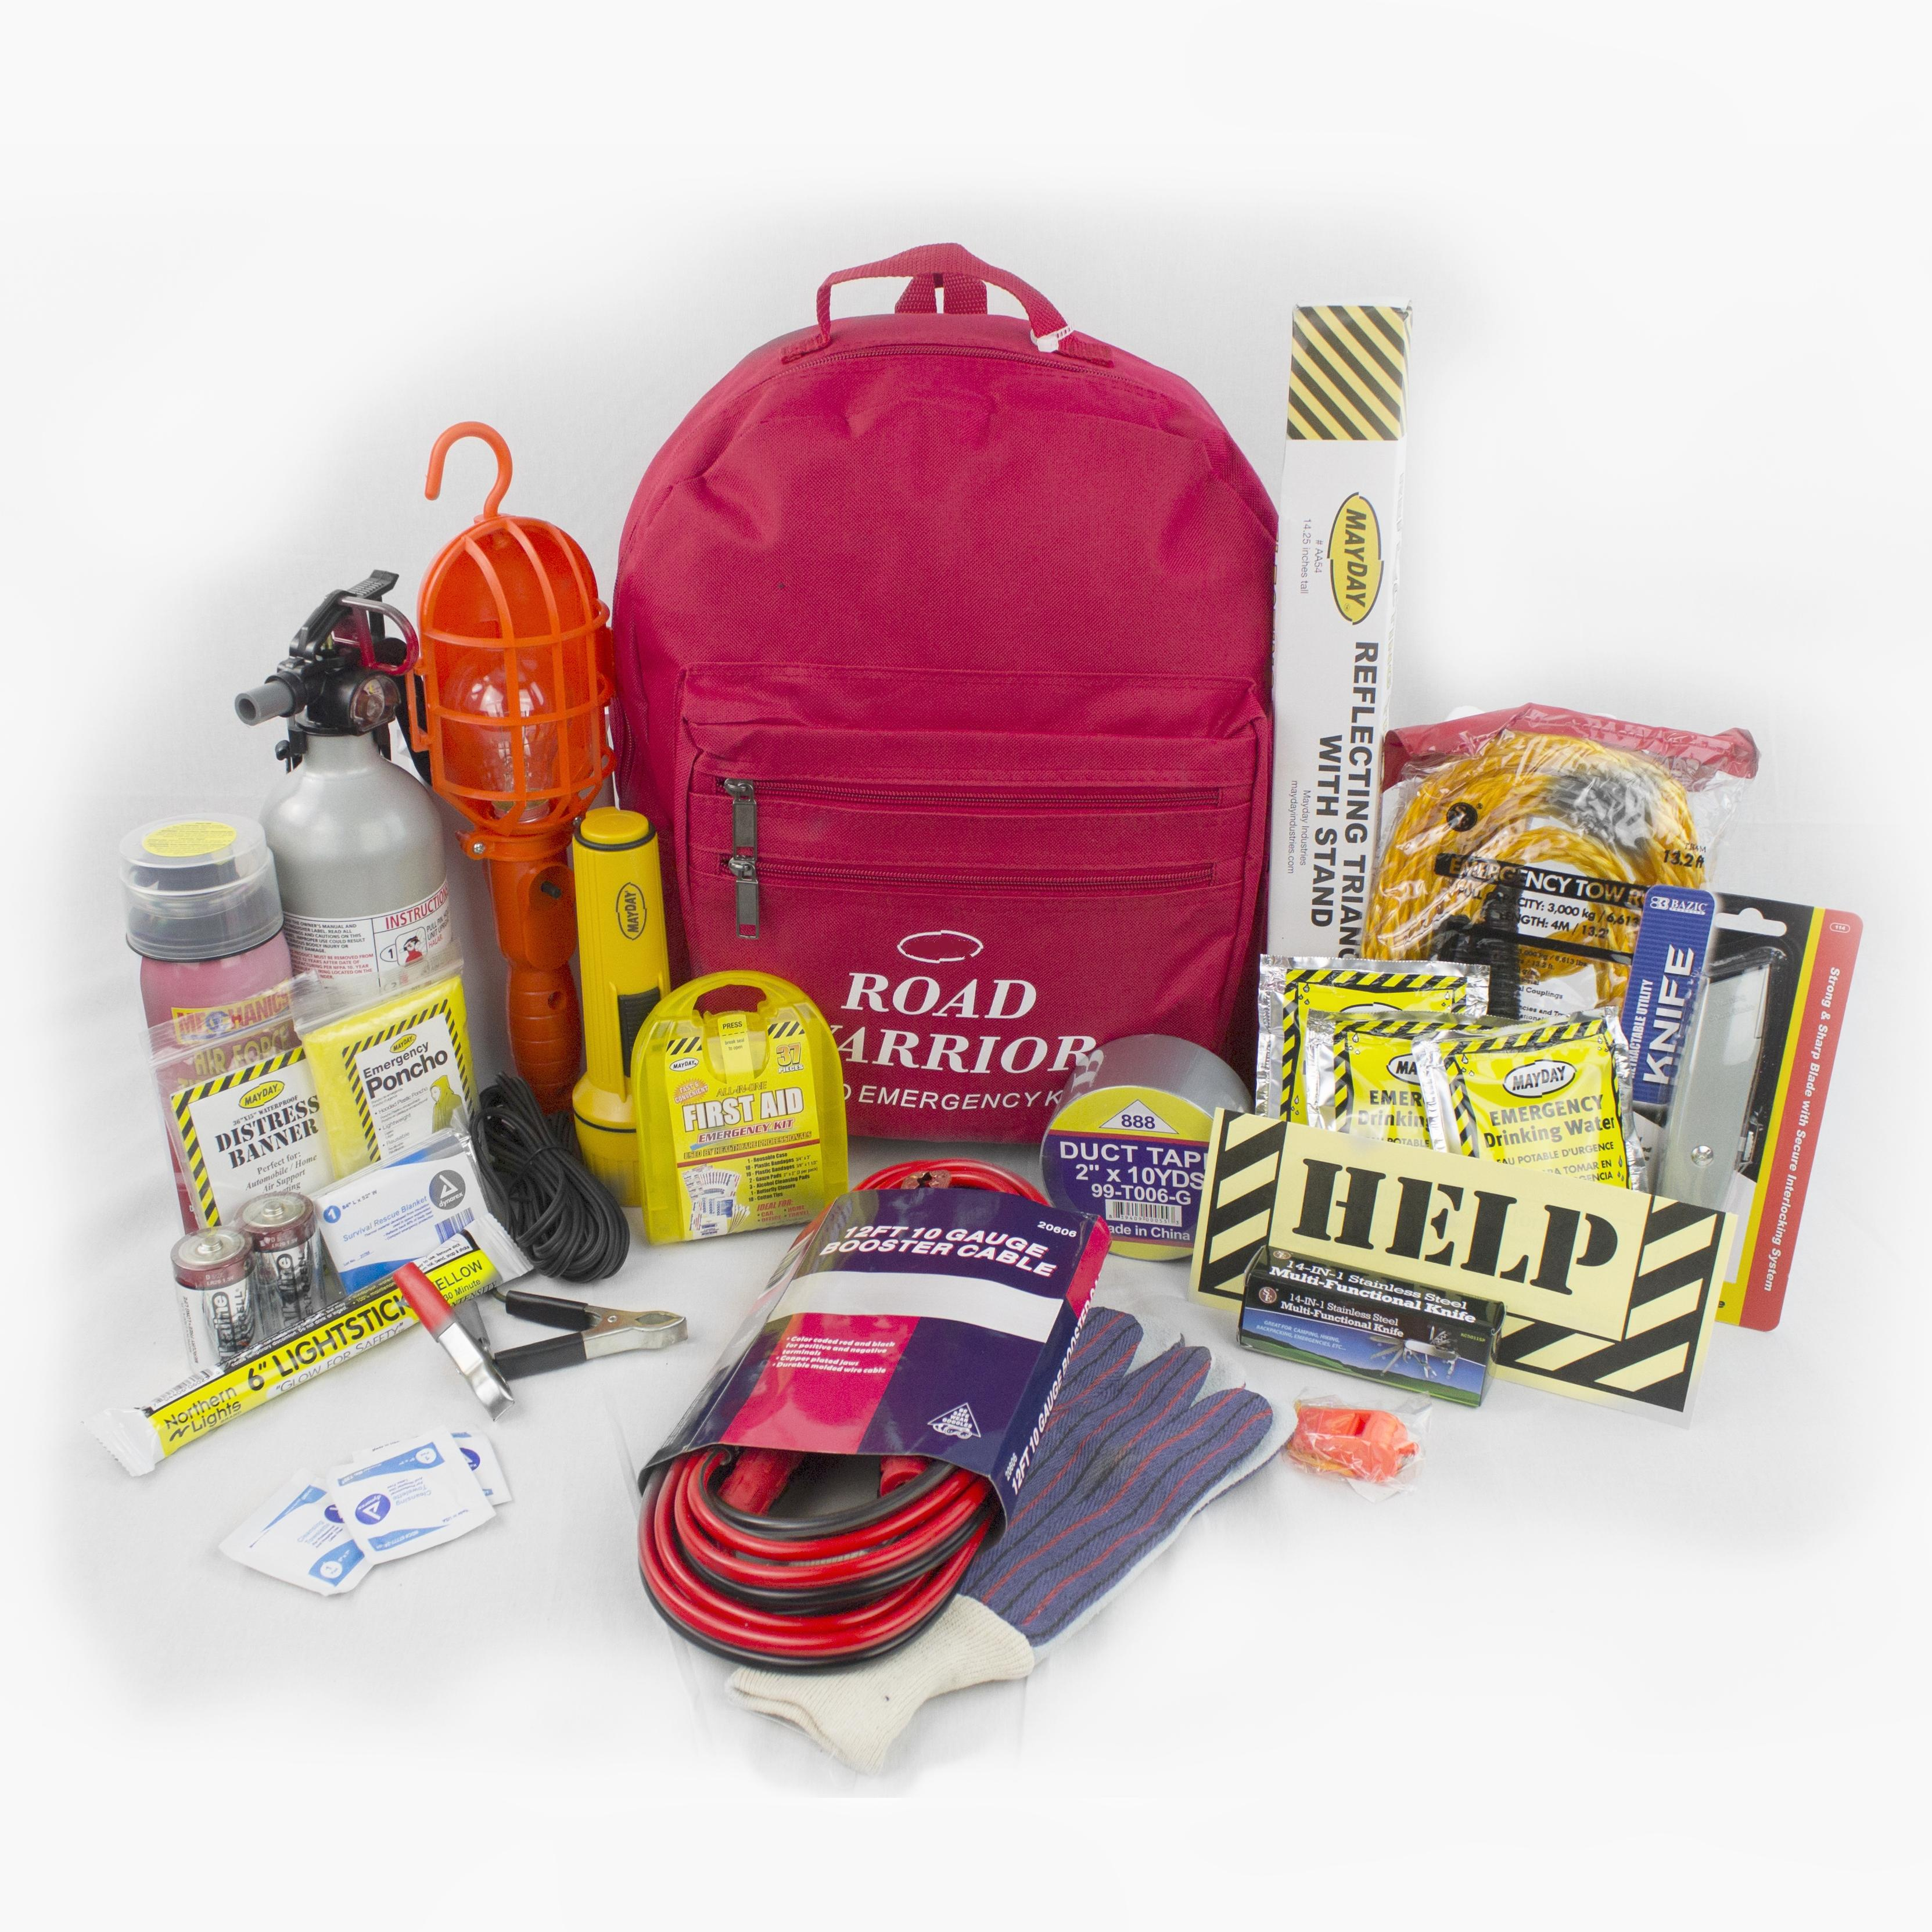 21 Piece Emergency Preparedness and Survival Kit for Cars Trucks and RVs (SOS-AA01-360)